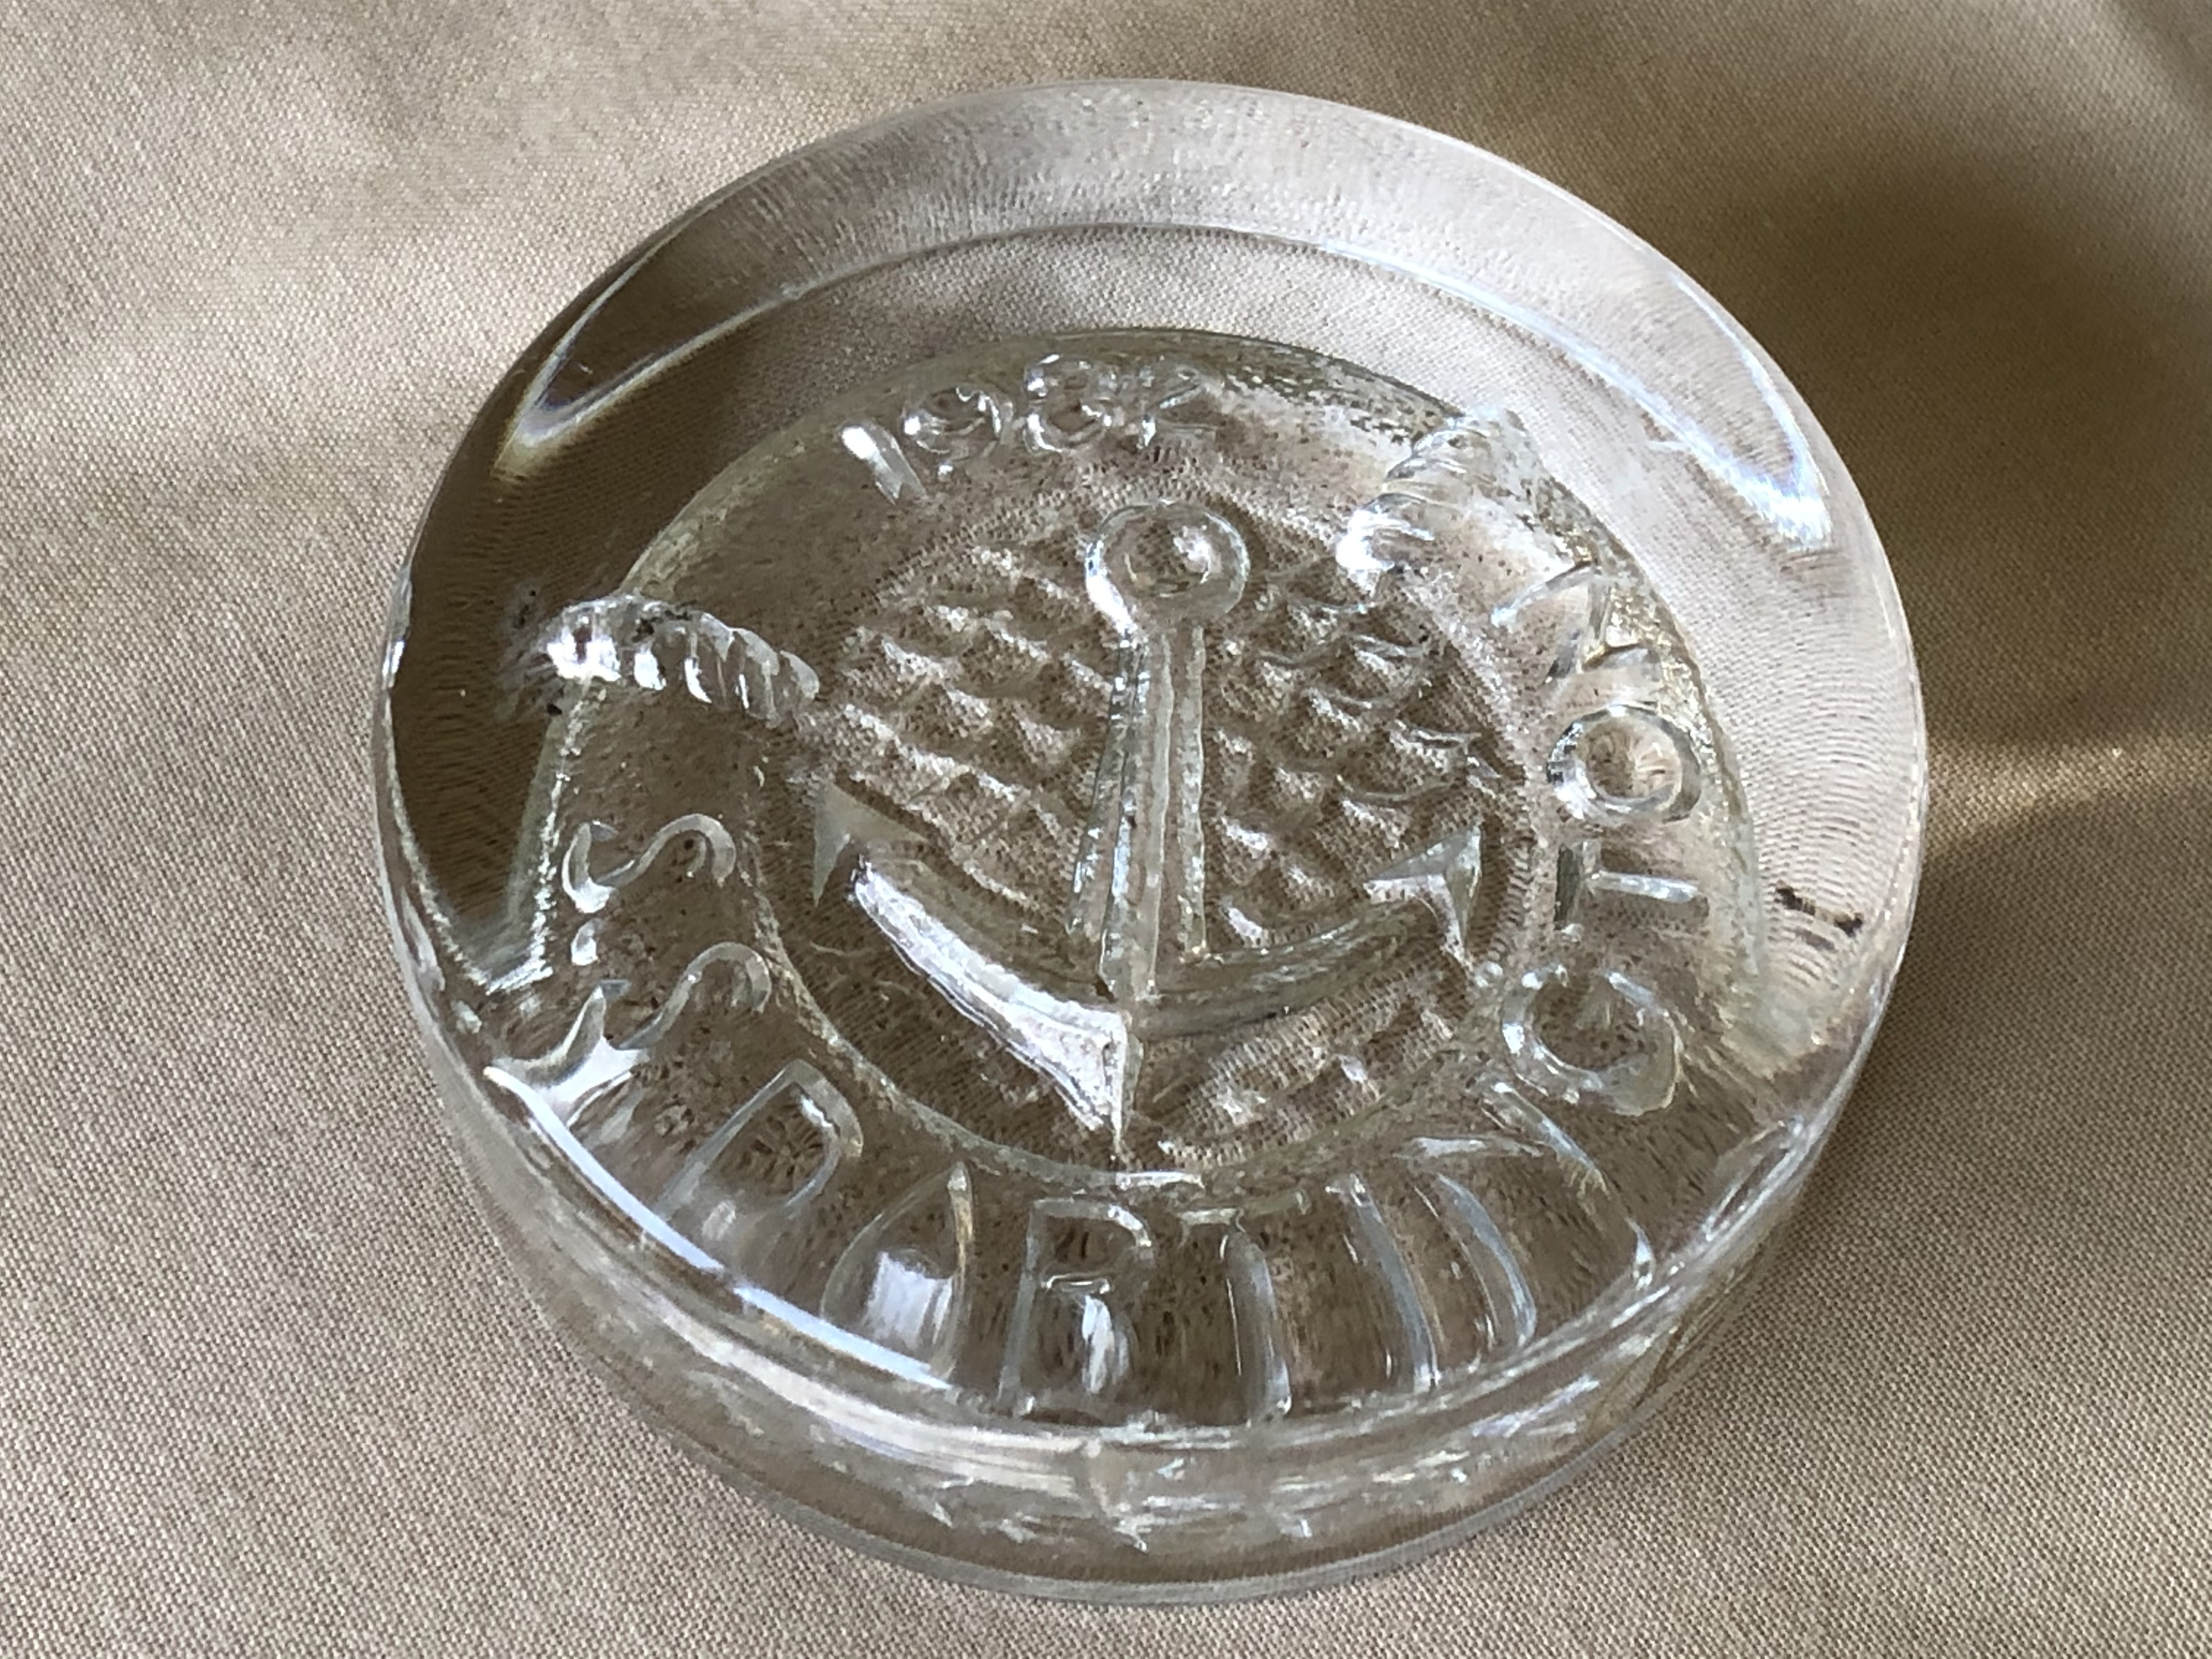 GLASS PAPERWEIGHT SOUVENIR FROM THE VESSEL THE SS DARTINGTON